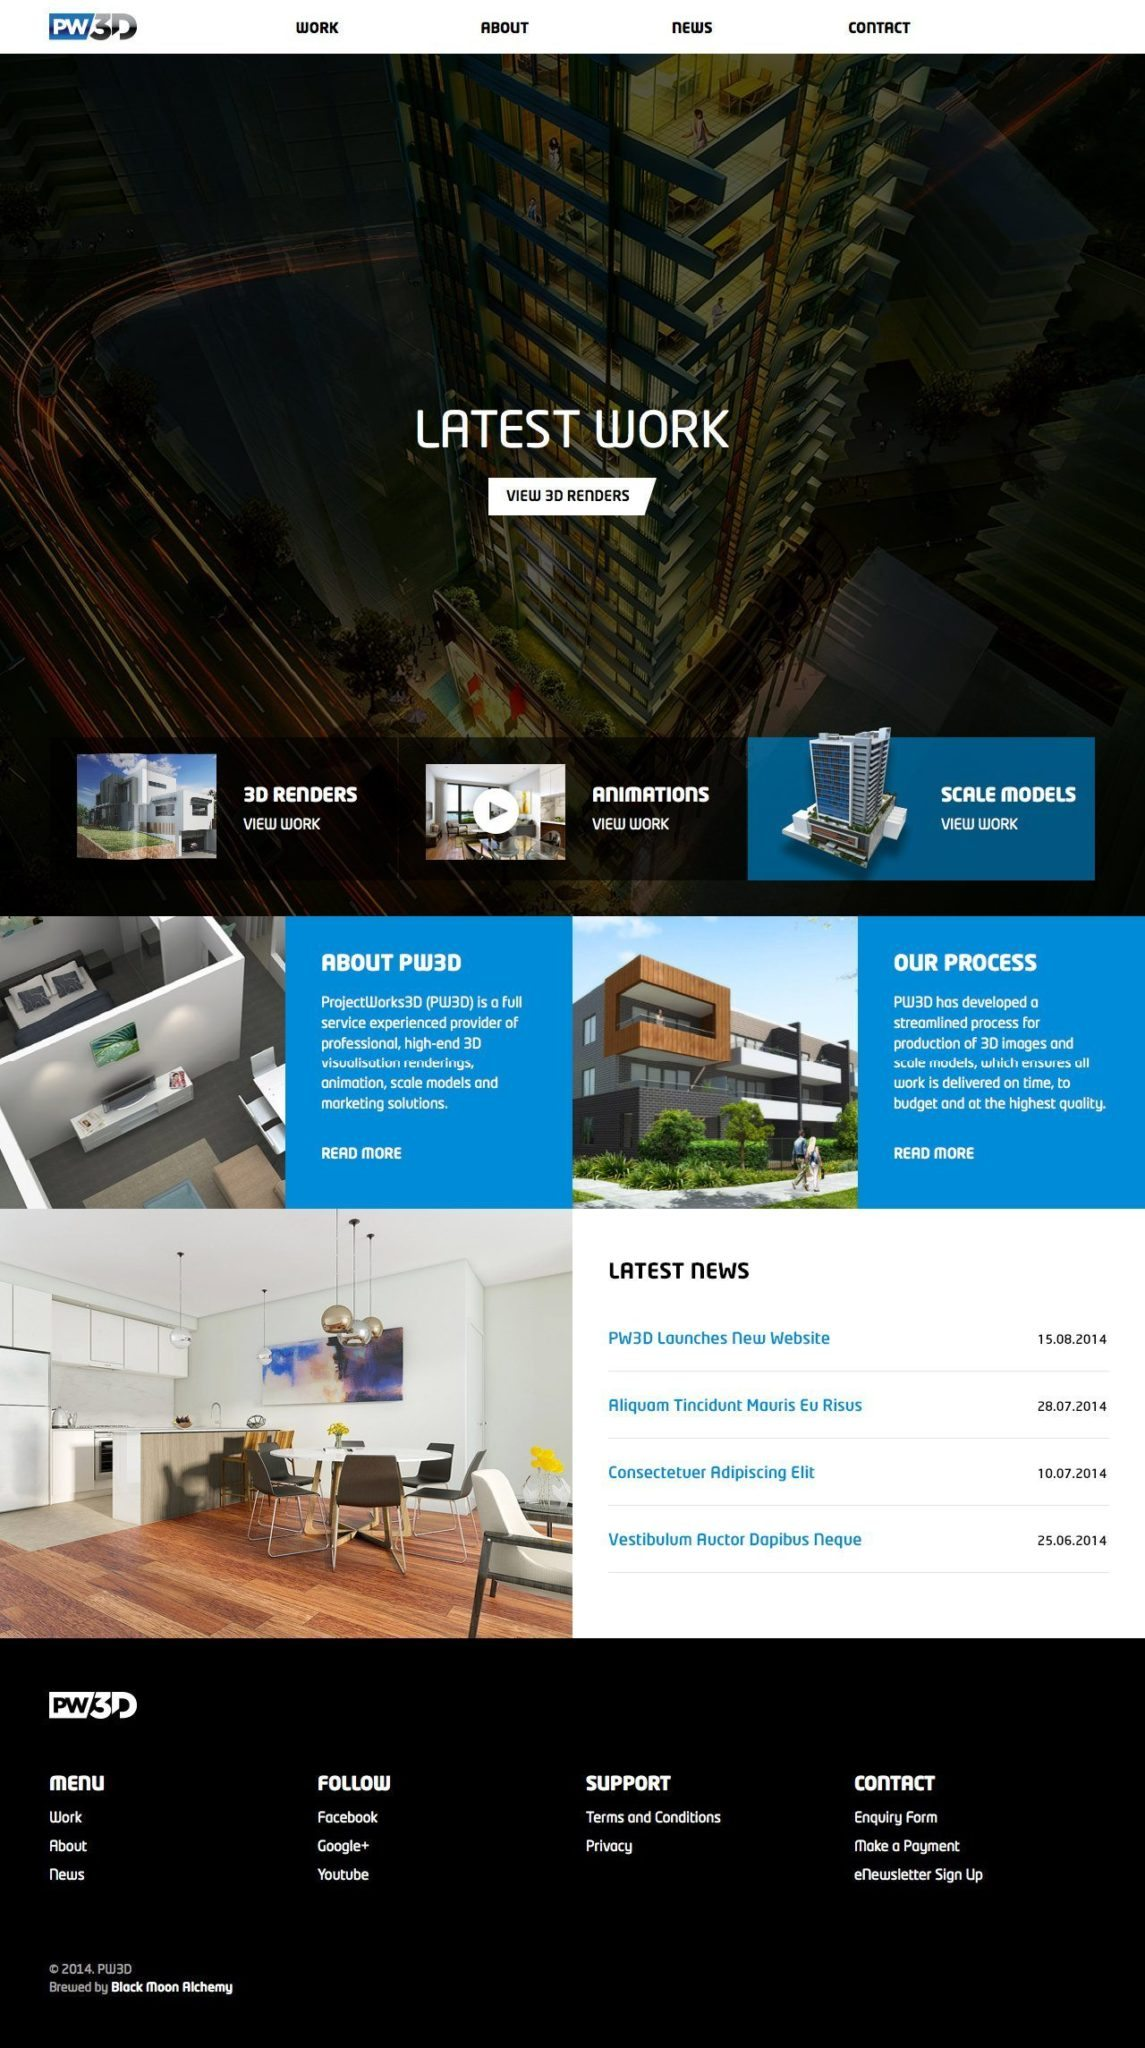 PW3D Website Homepage